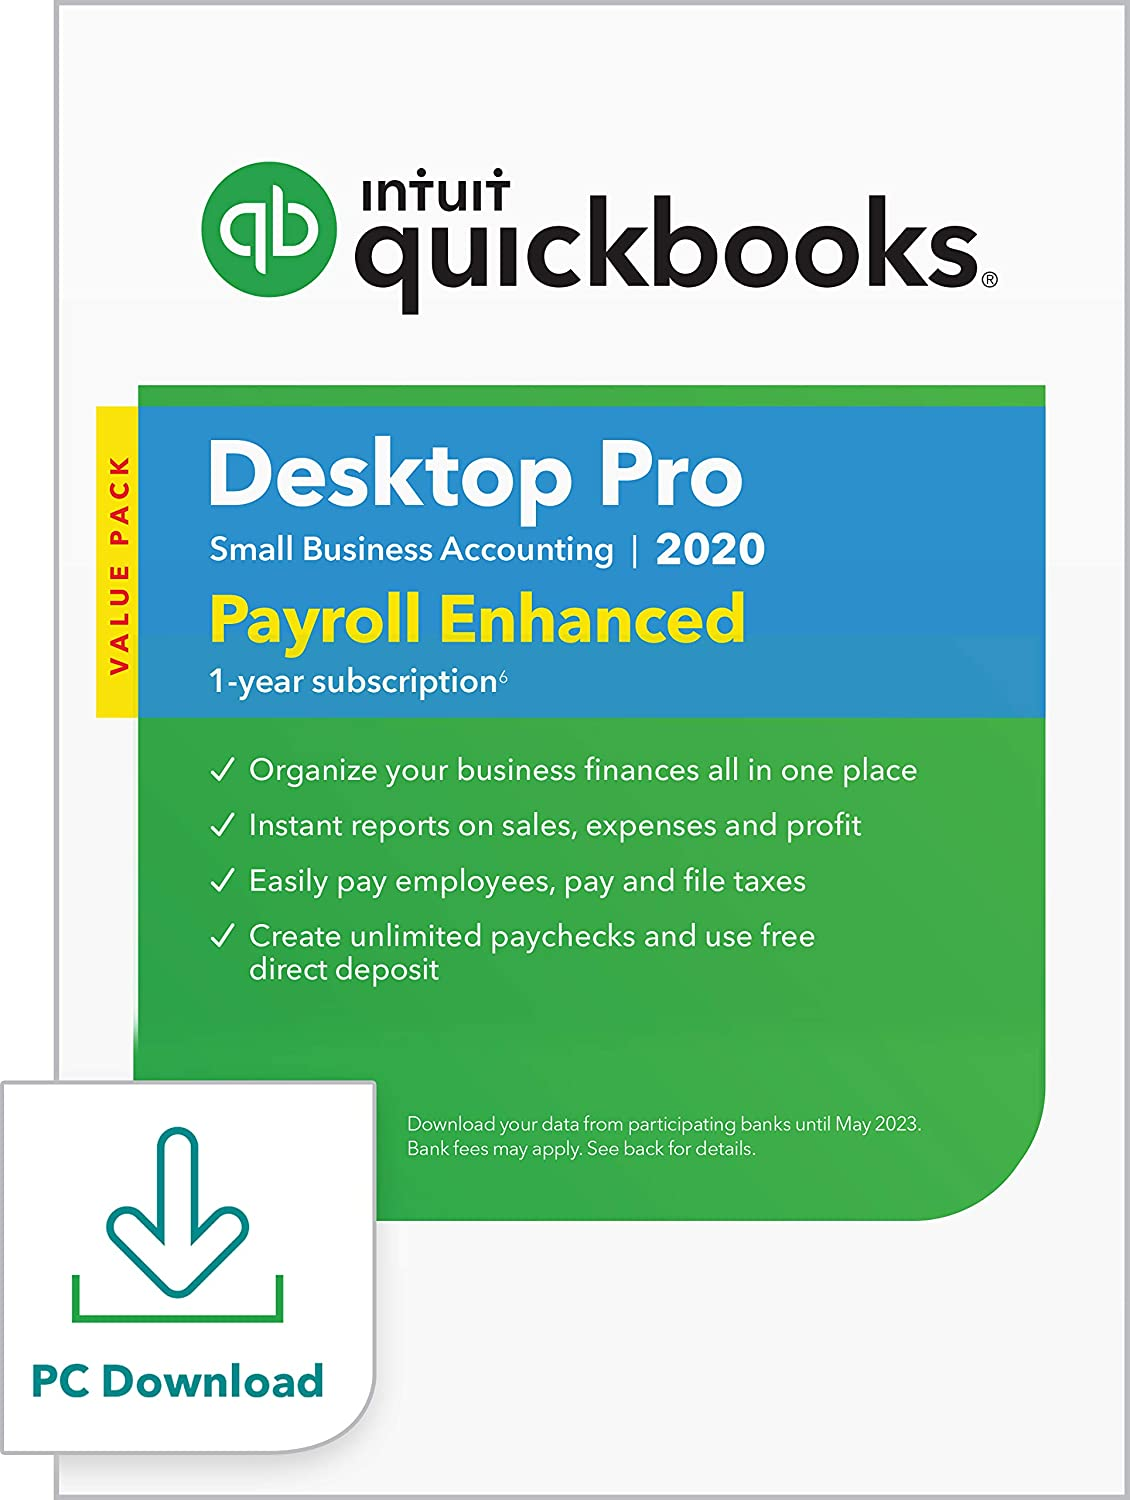 QuickBooks DesktopPro with Enhanced Payroll 2020Accounting Software for Small Business withShortcut Guide [PC Download]